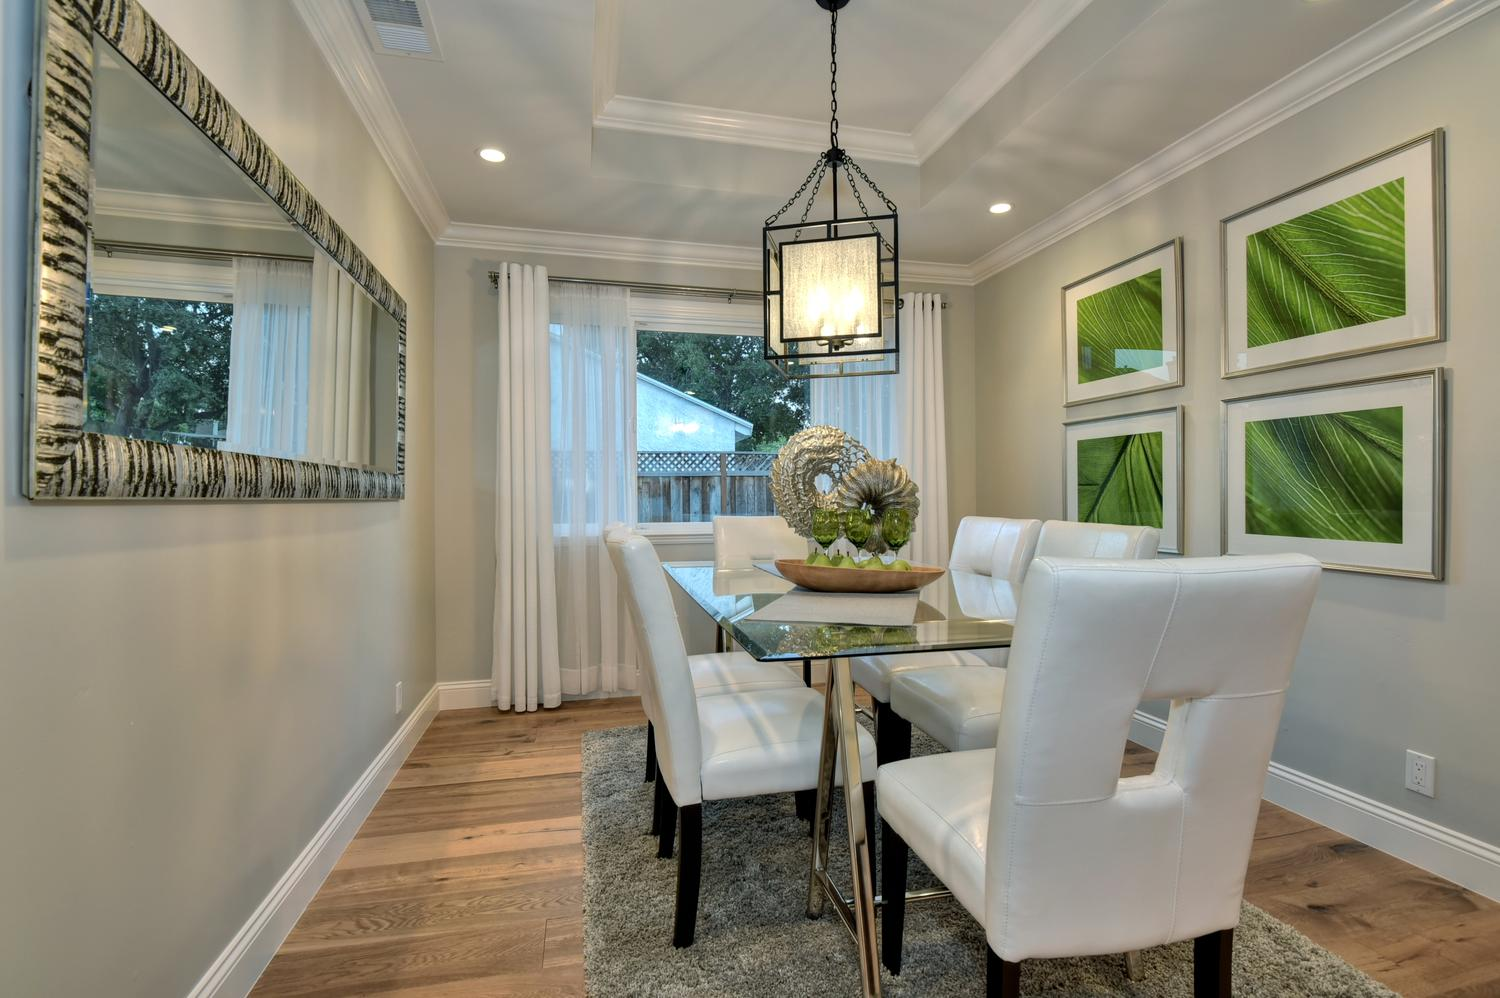 1028 Steinway Ave Campbell CA-large-012-6-Dining Area-1500x998-72dpi.jpg